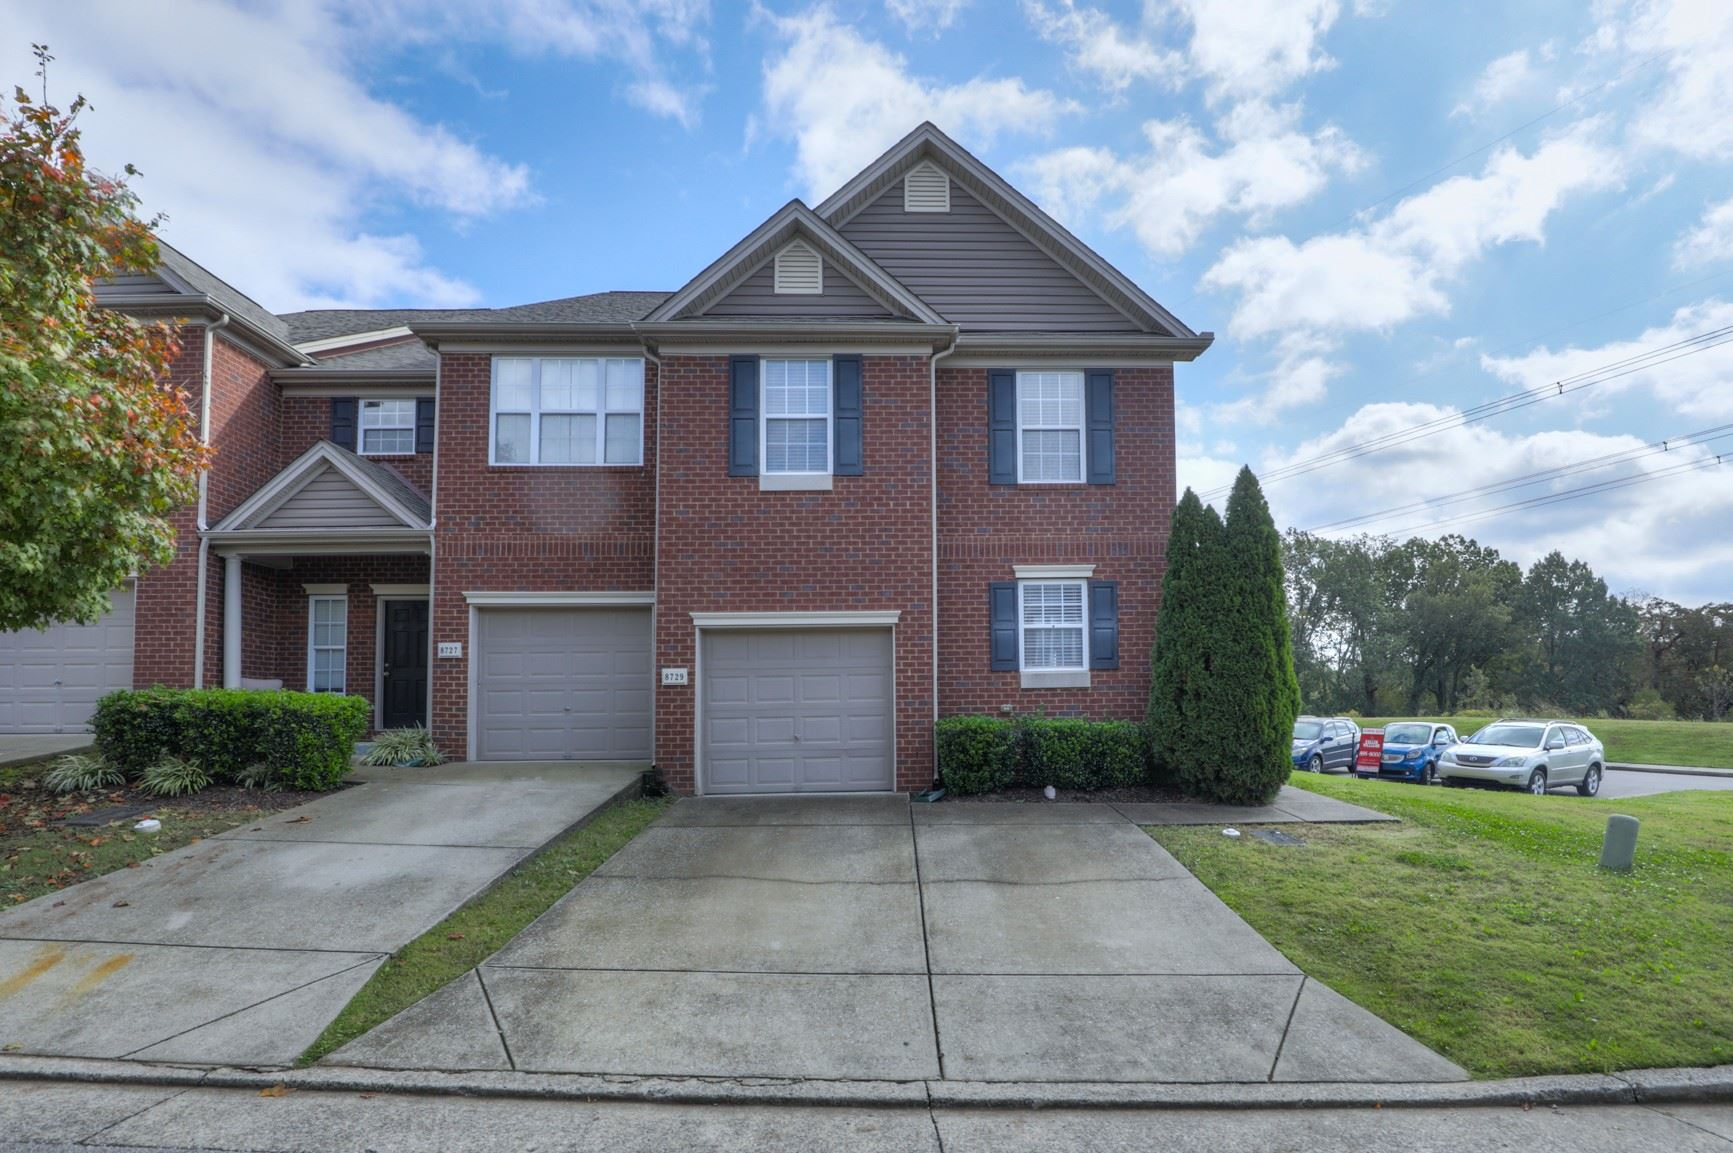 Photo of 8729 Ambonnay Dr, Brentwood, TN 37027 (MLS # 2197476)